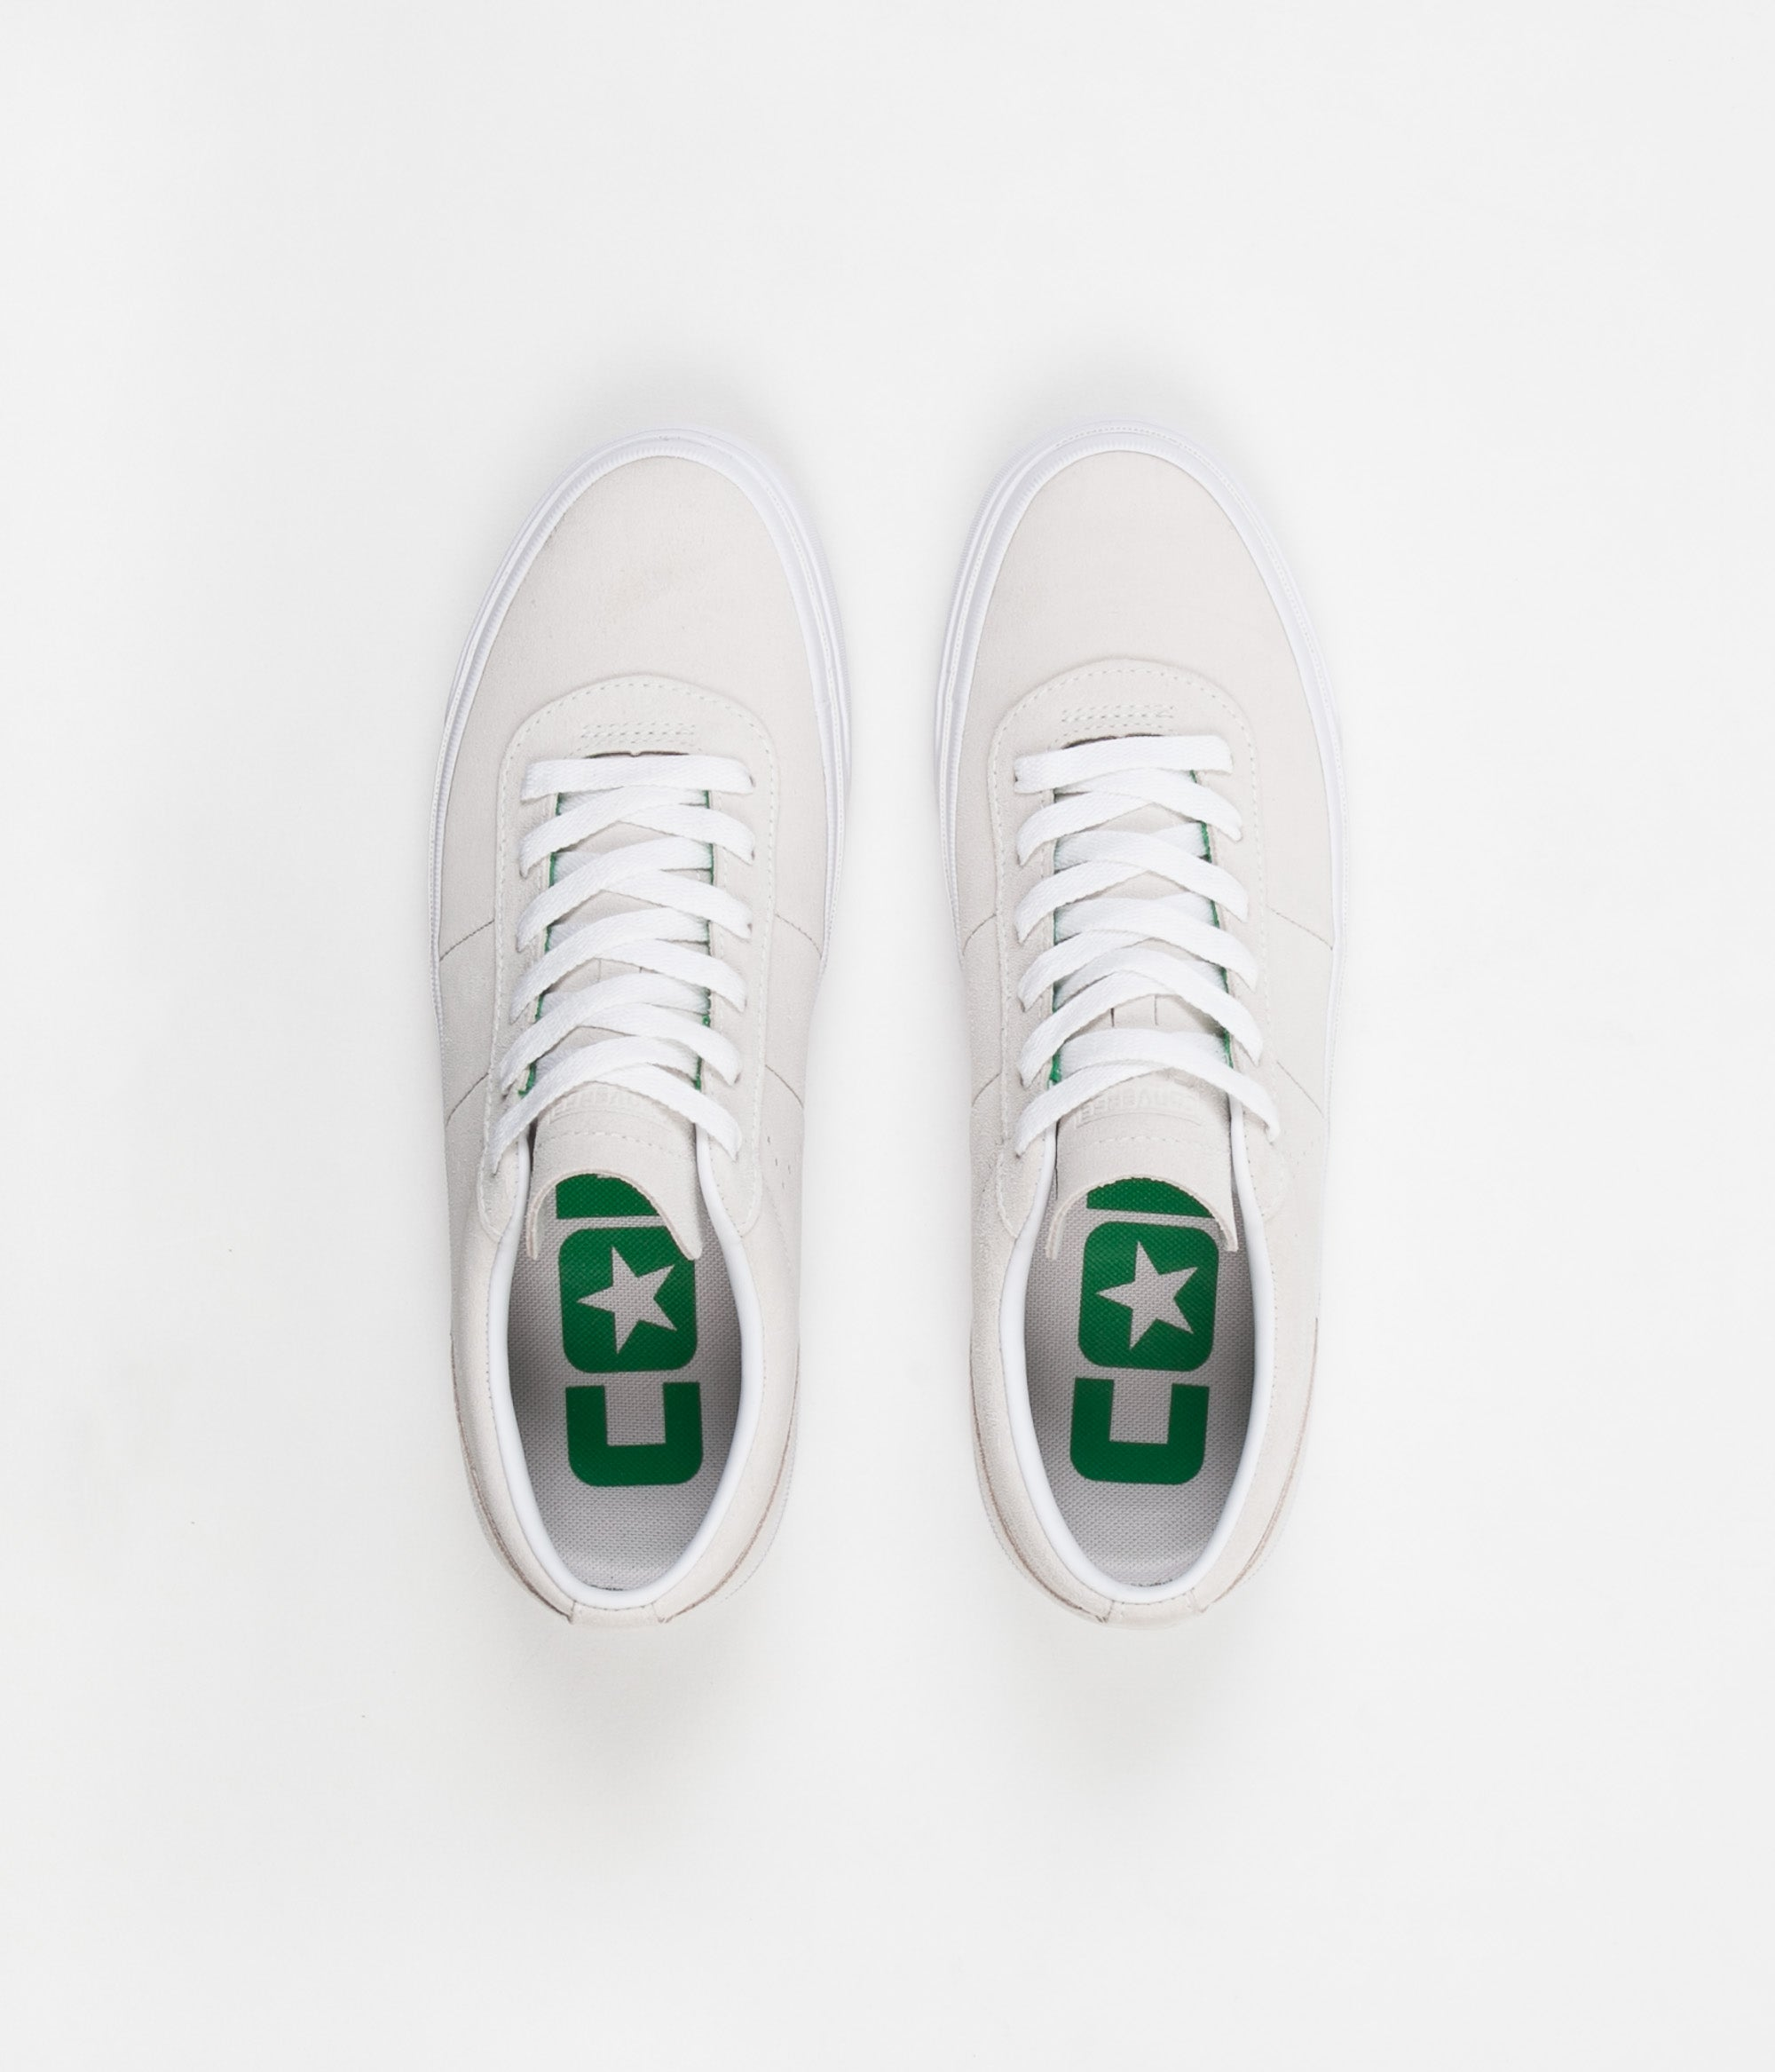 Converse One Star CC Pro Ox Shoes